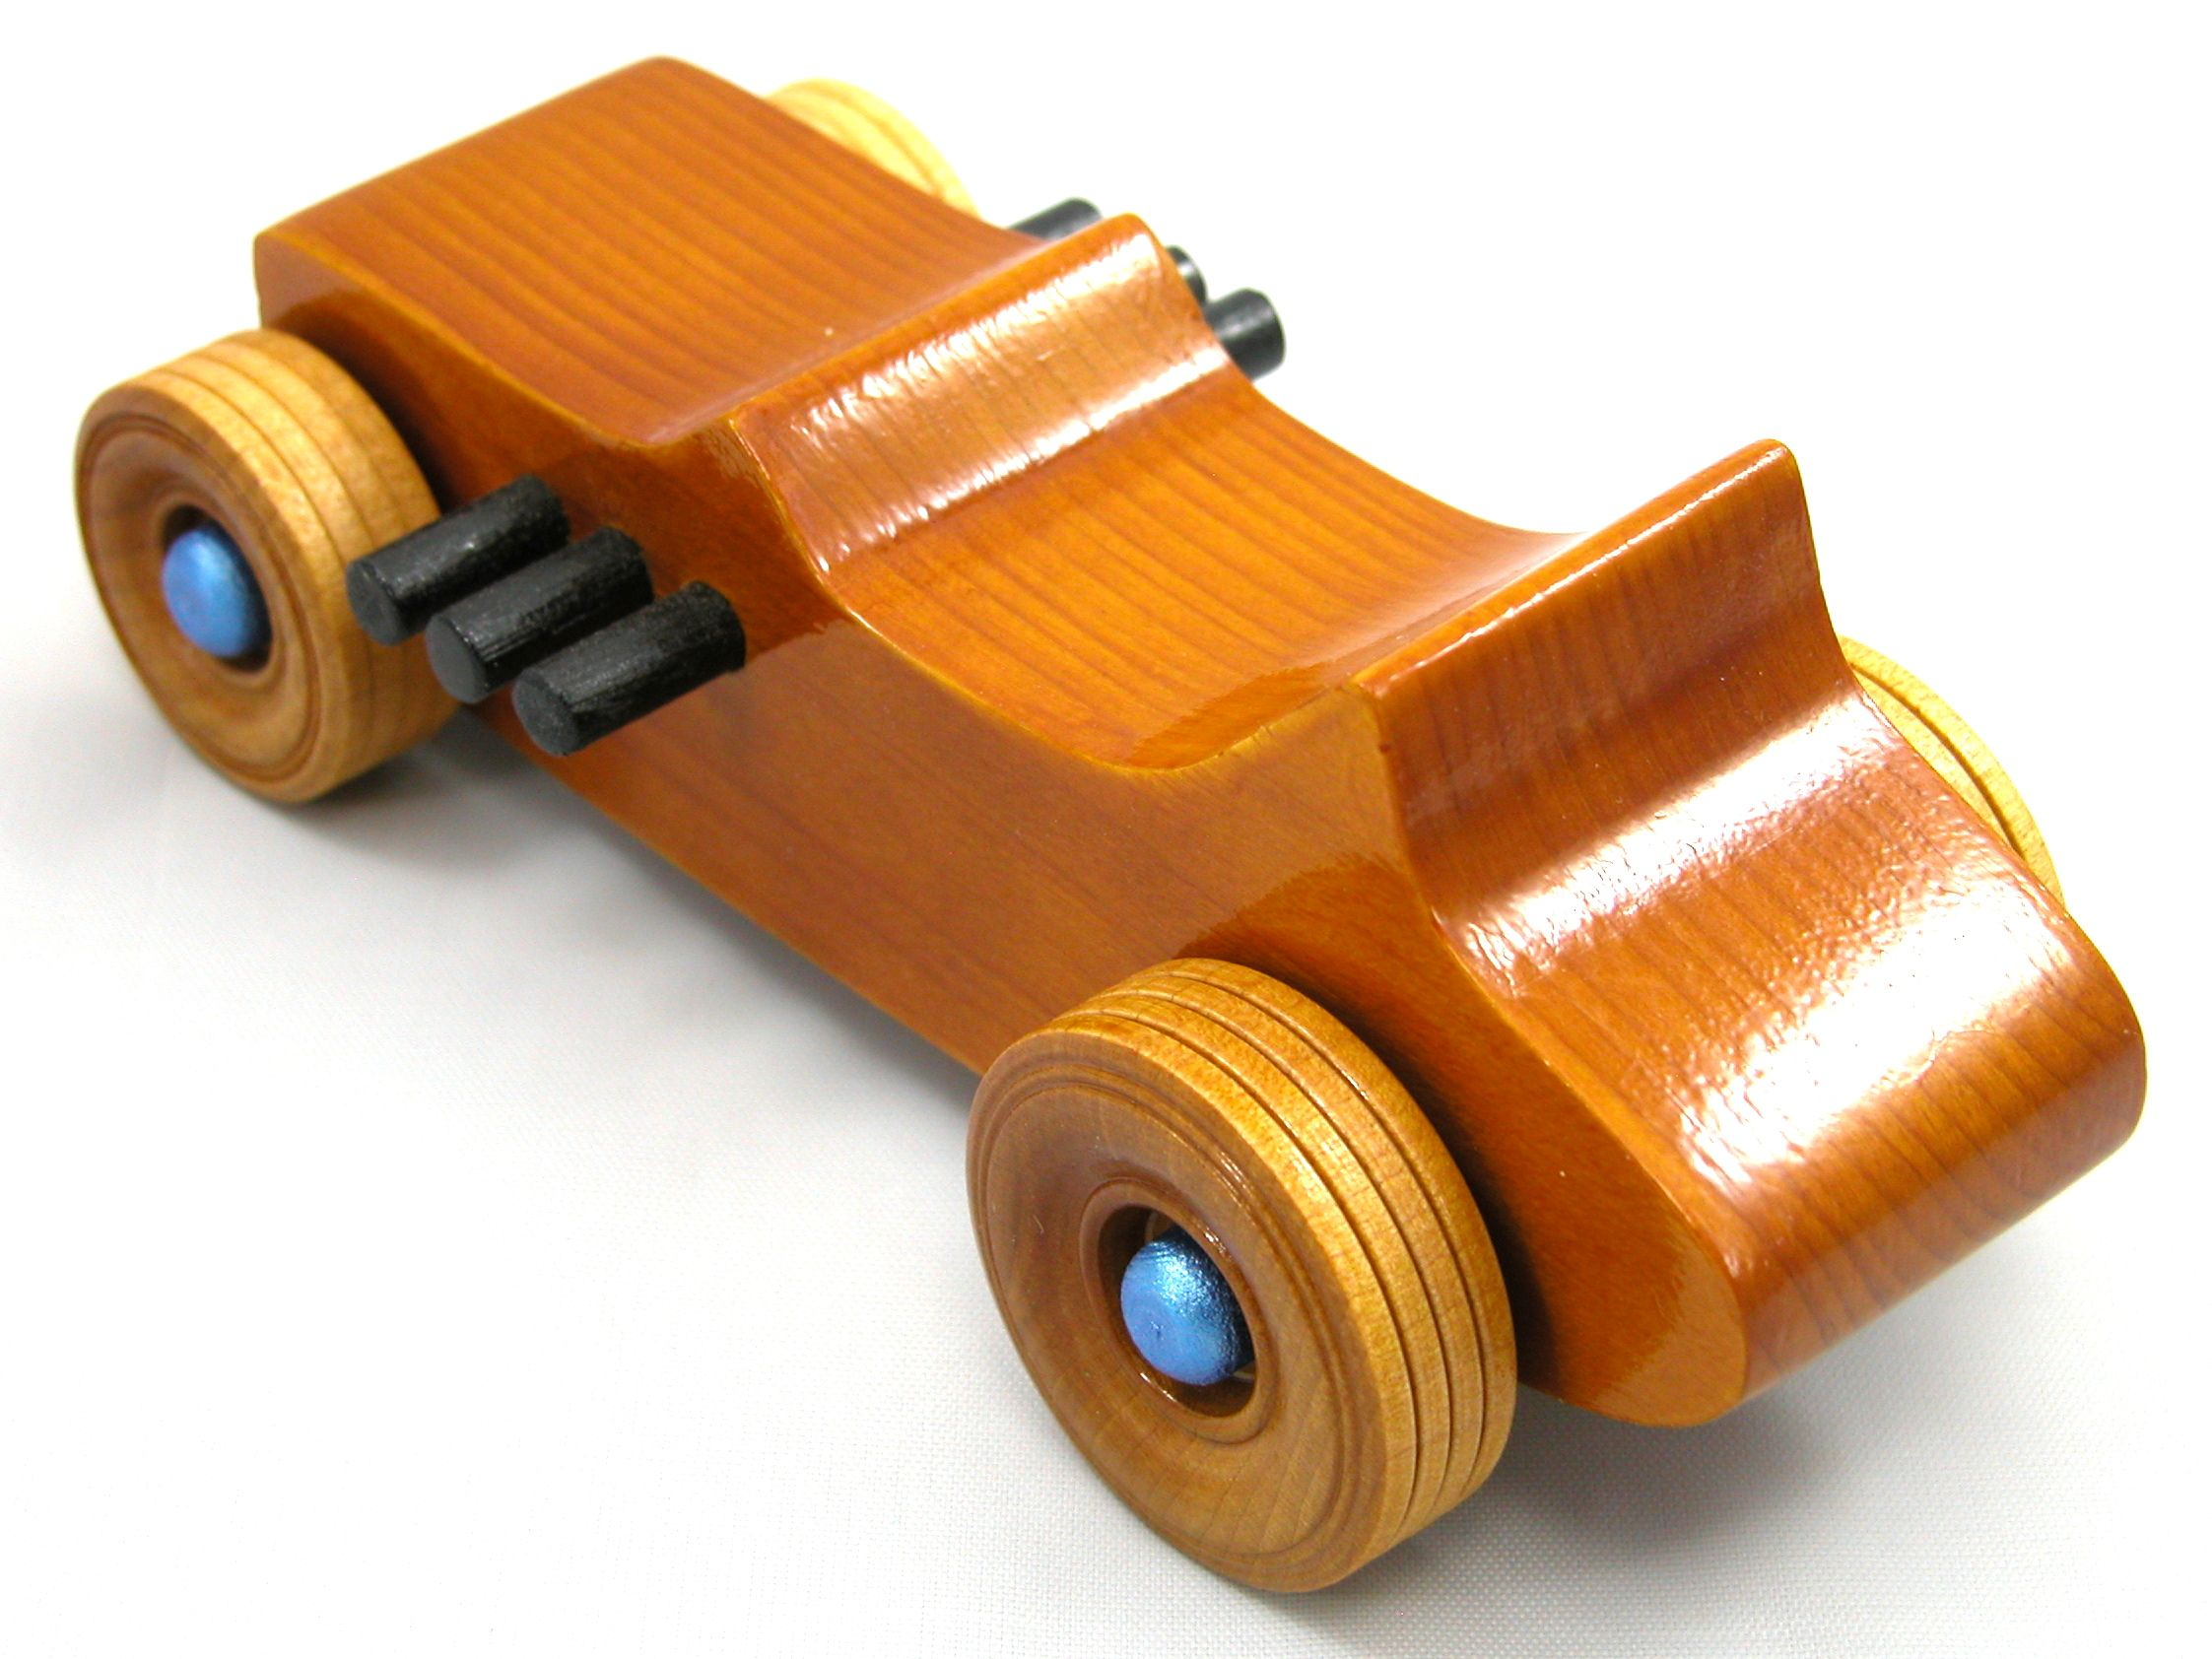 Car toys for girls  Handmade Wooden Toy Car Hot Rod  TBucket From the Hot Rod